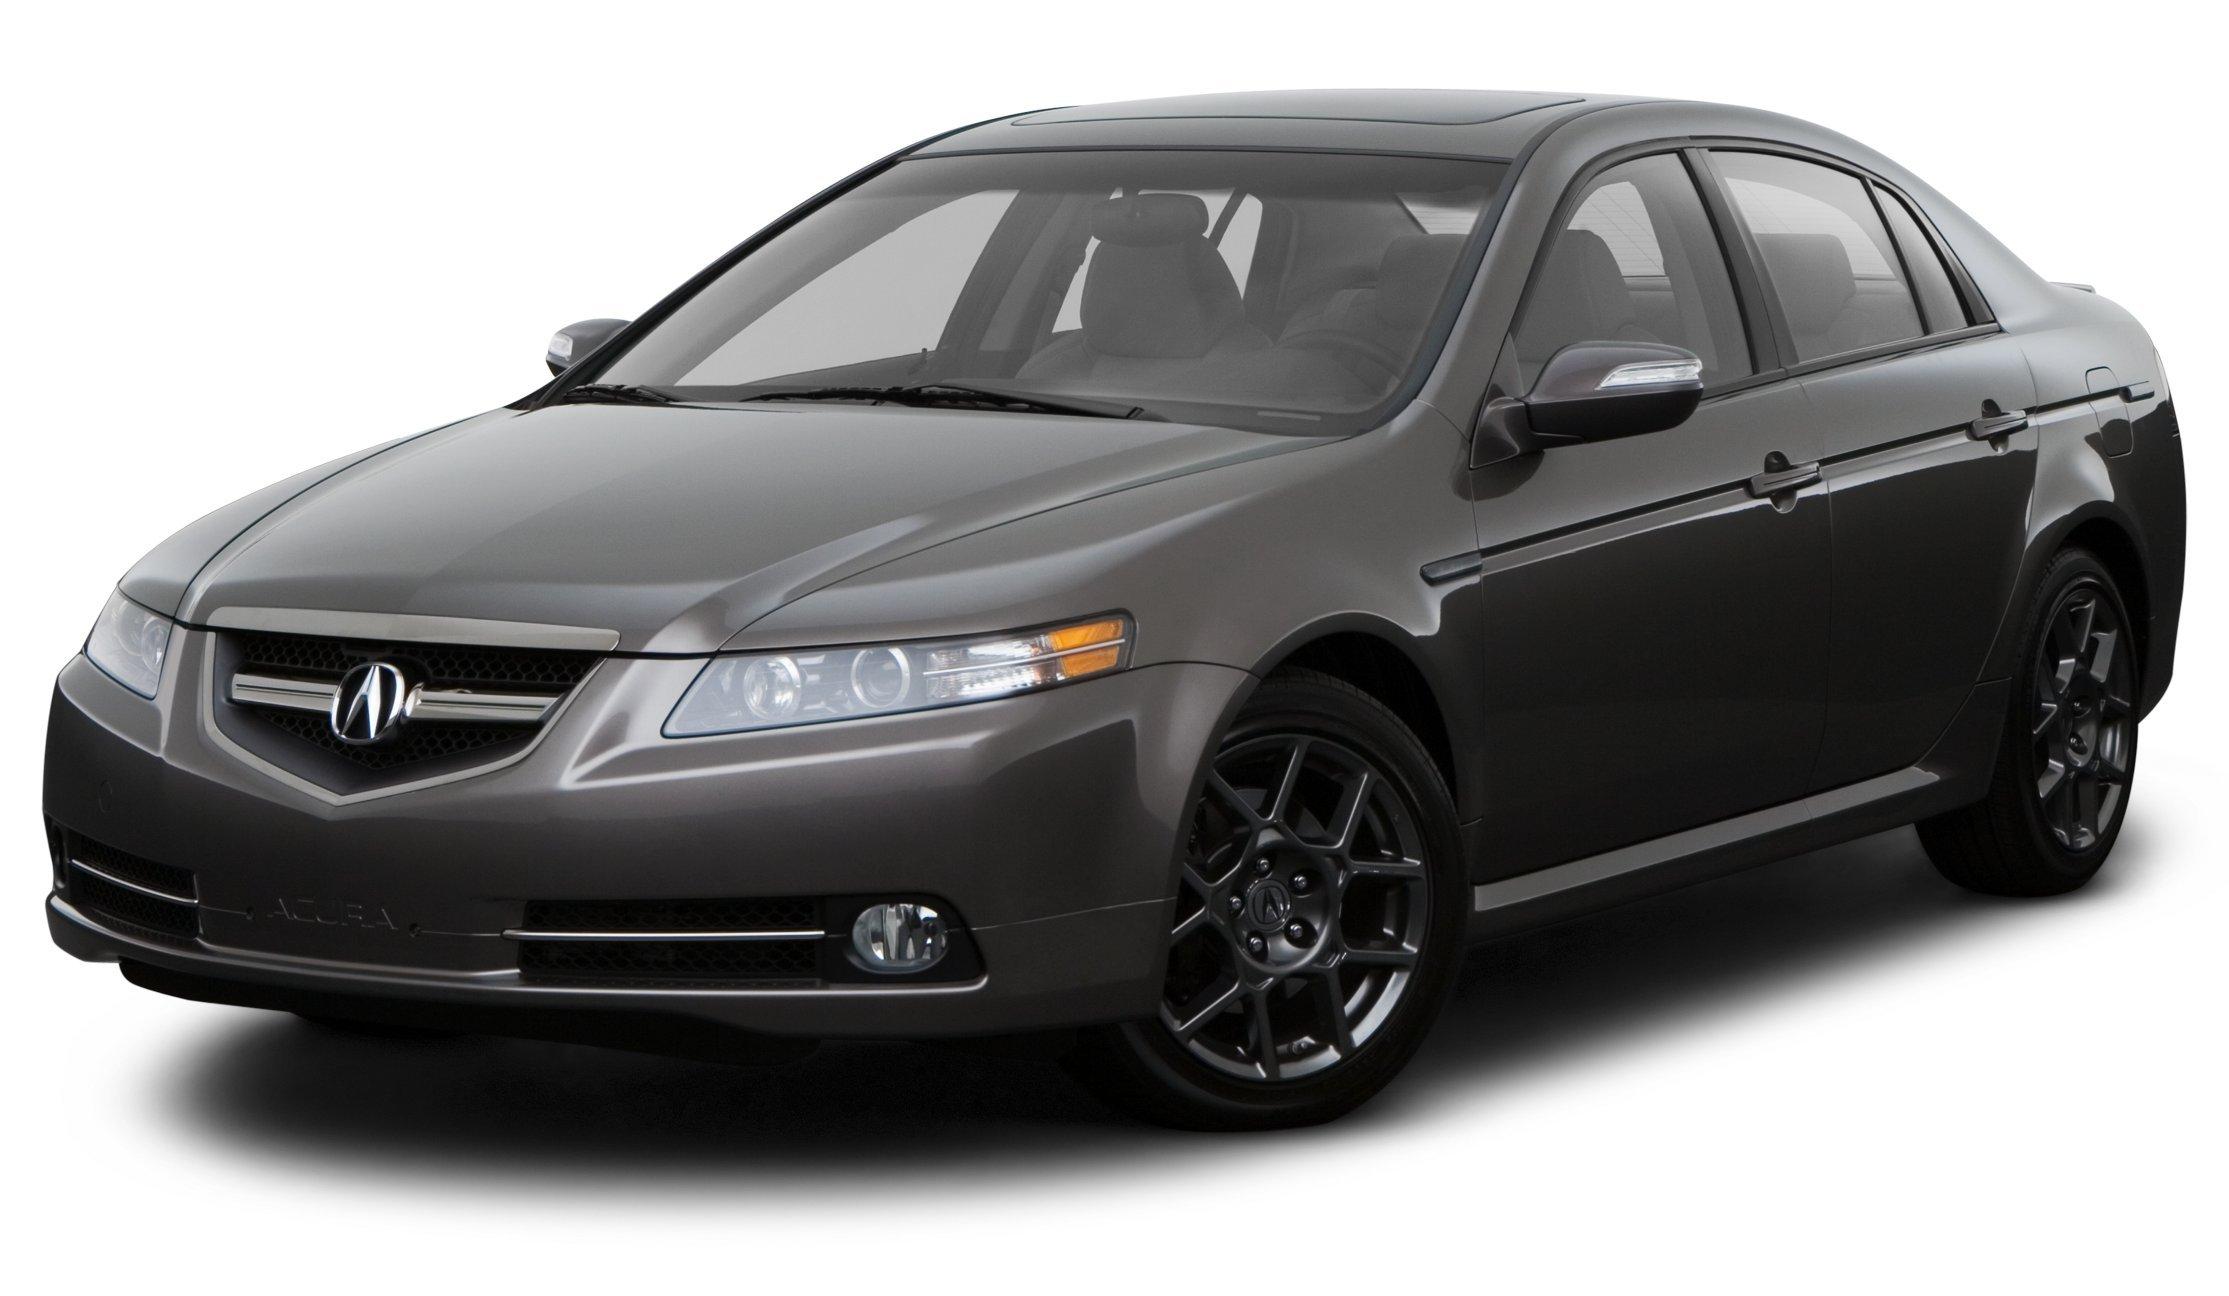 2008 saab 9 5 reviews images and specs vehicles